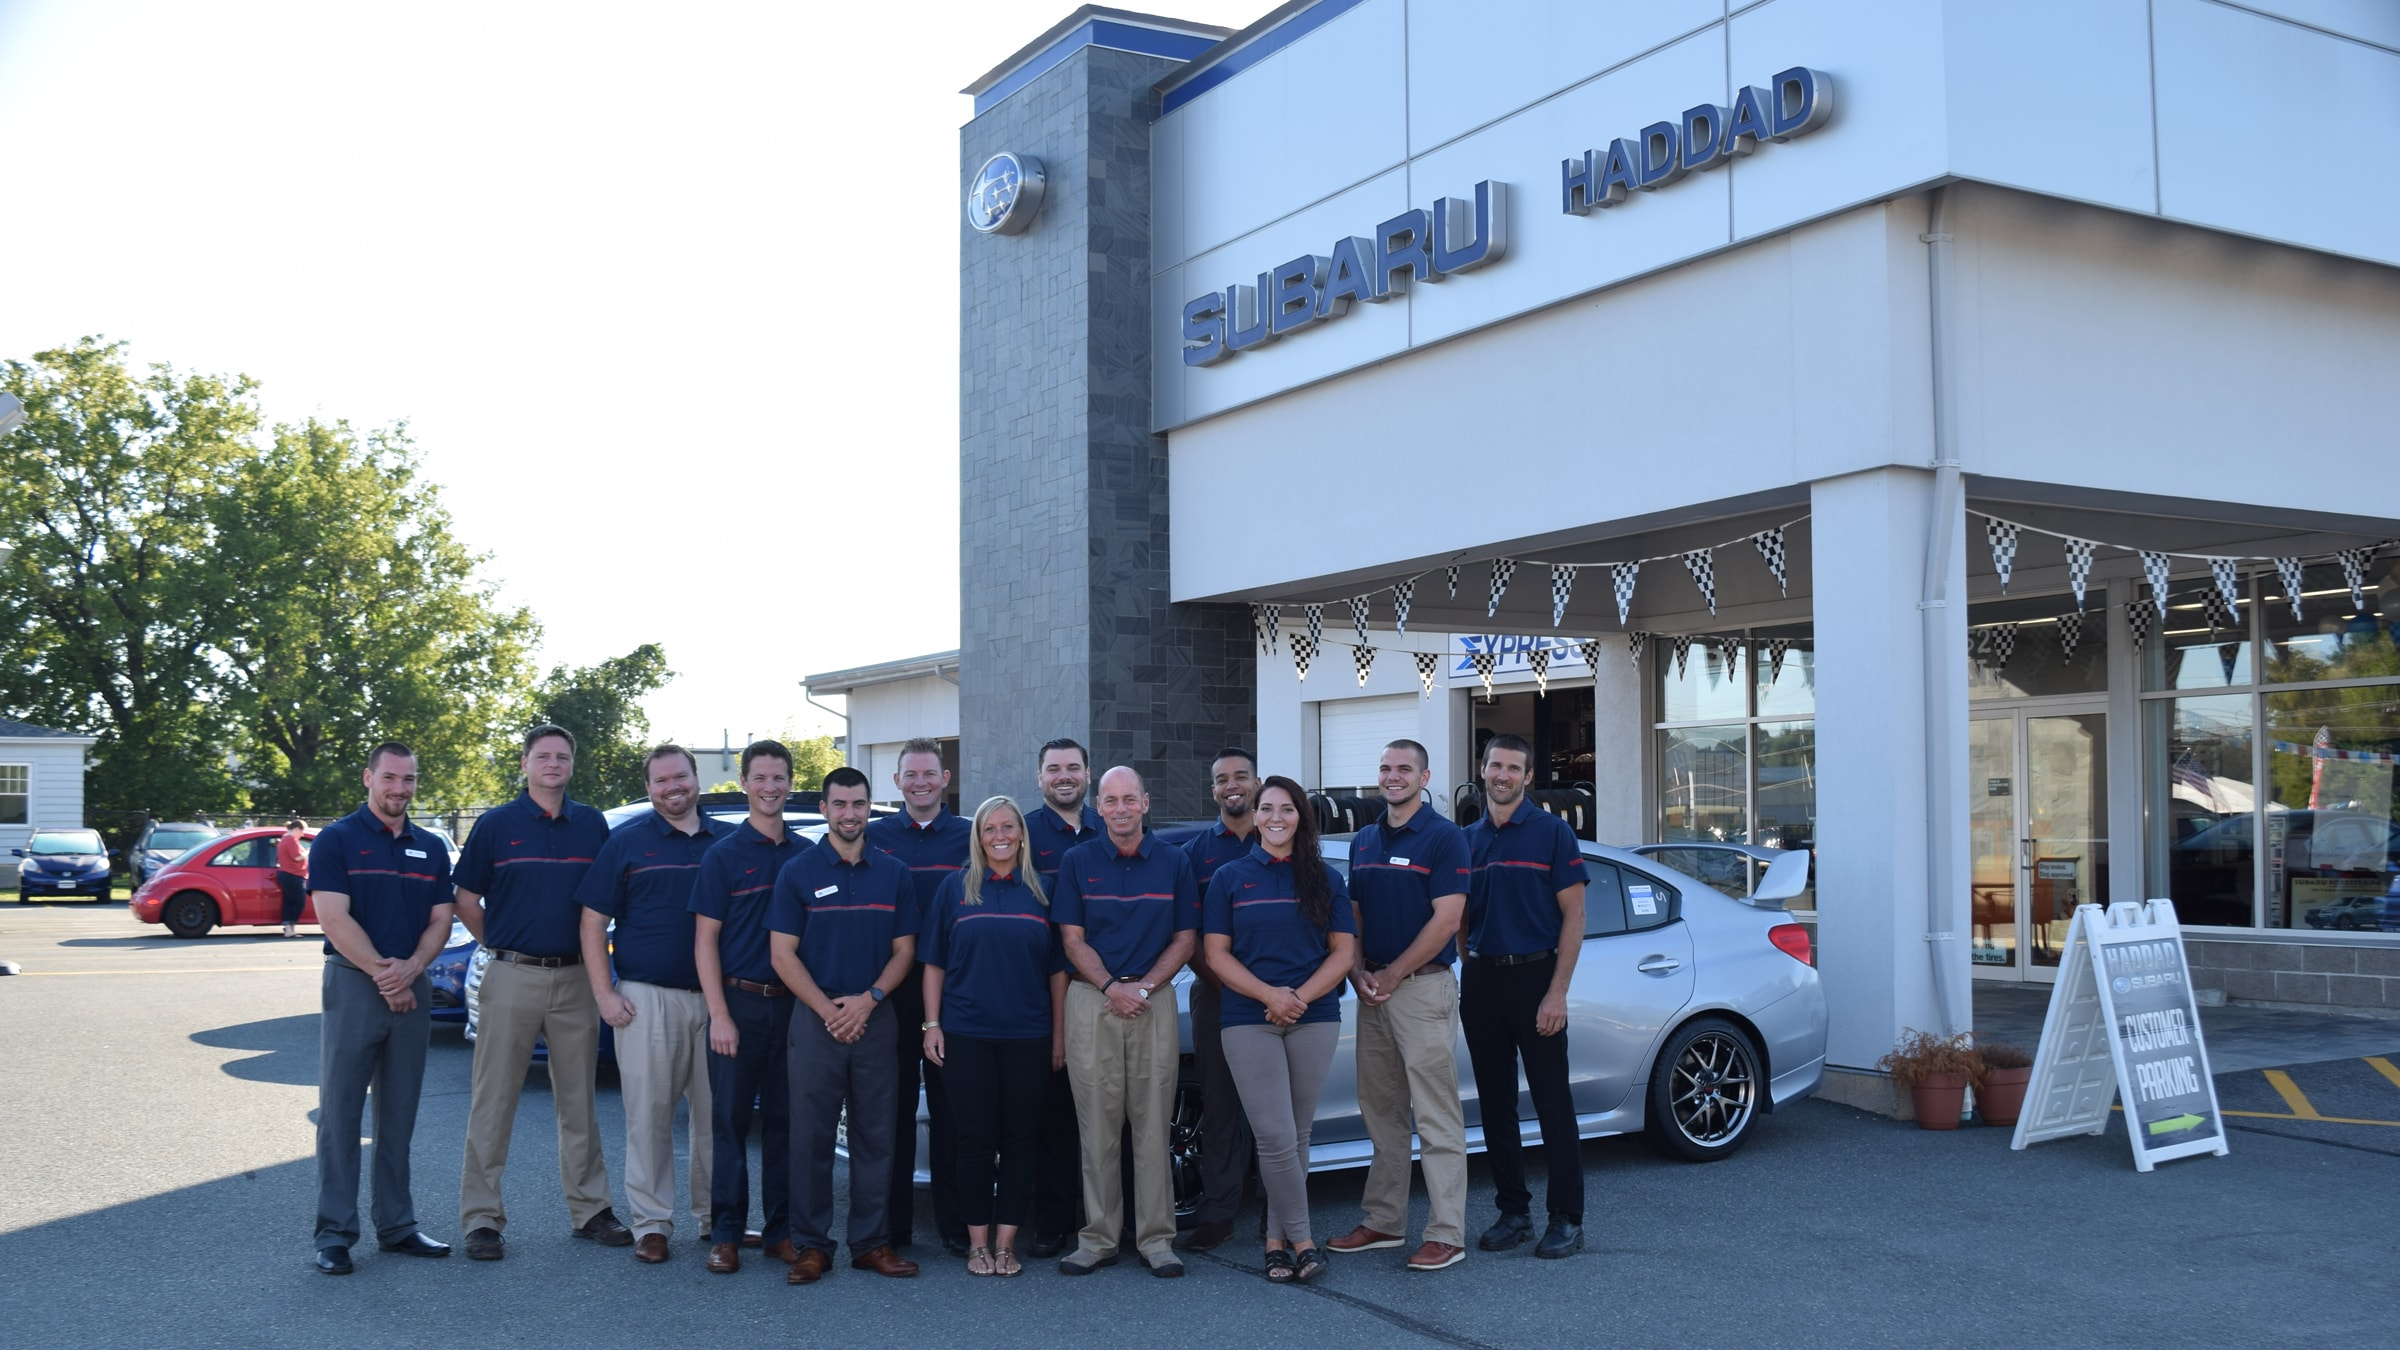 about haddad subaru new subaru used car dealership in pittsfield near northampton west. Black Bedroom Furniture Sets. Home Design Ideas